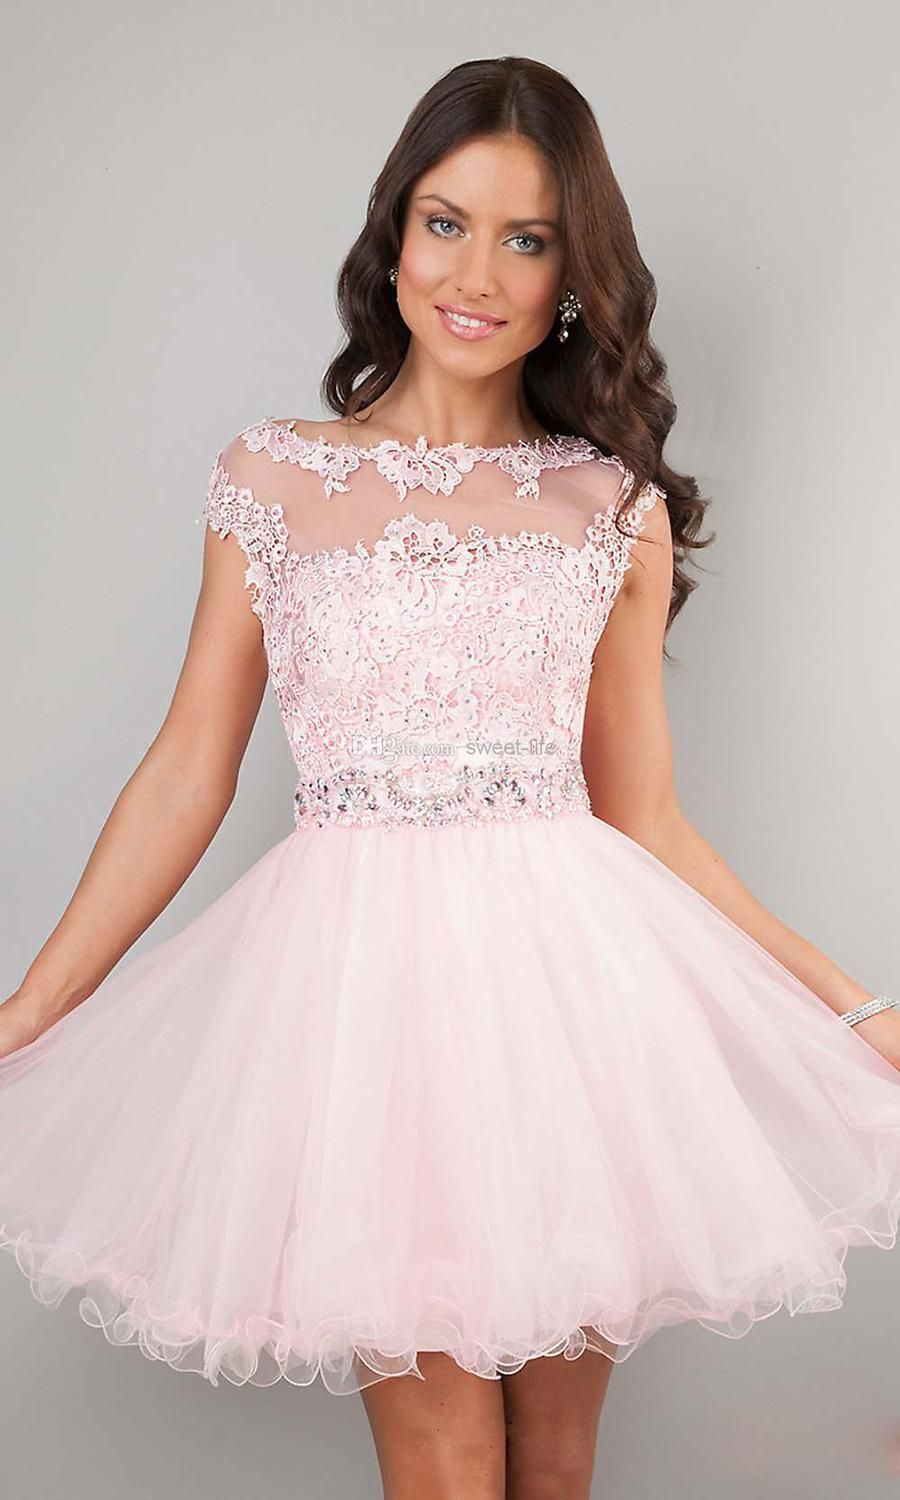 Short prom dresses pink high neck beaded applique see through cheap